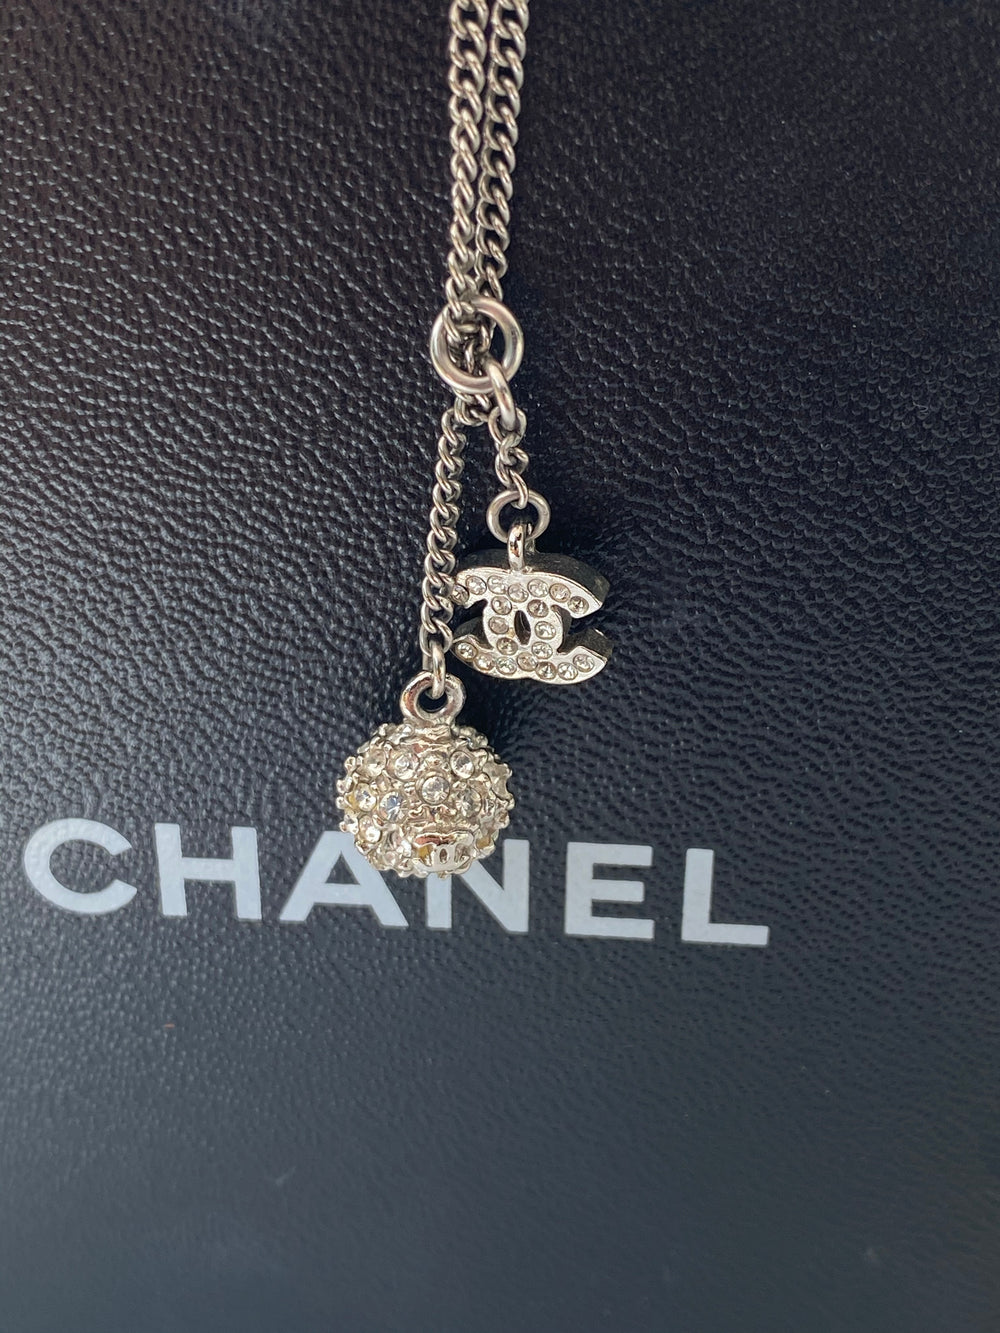 Chanel Crystal CC Necklace - As Seen on Instagram - Siopaella Designer Exchange